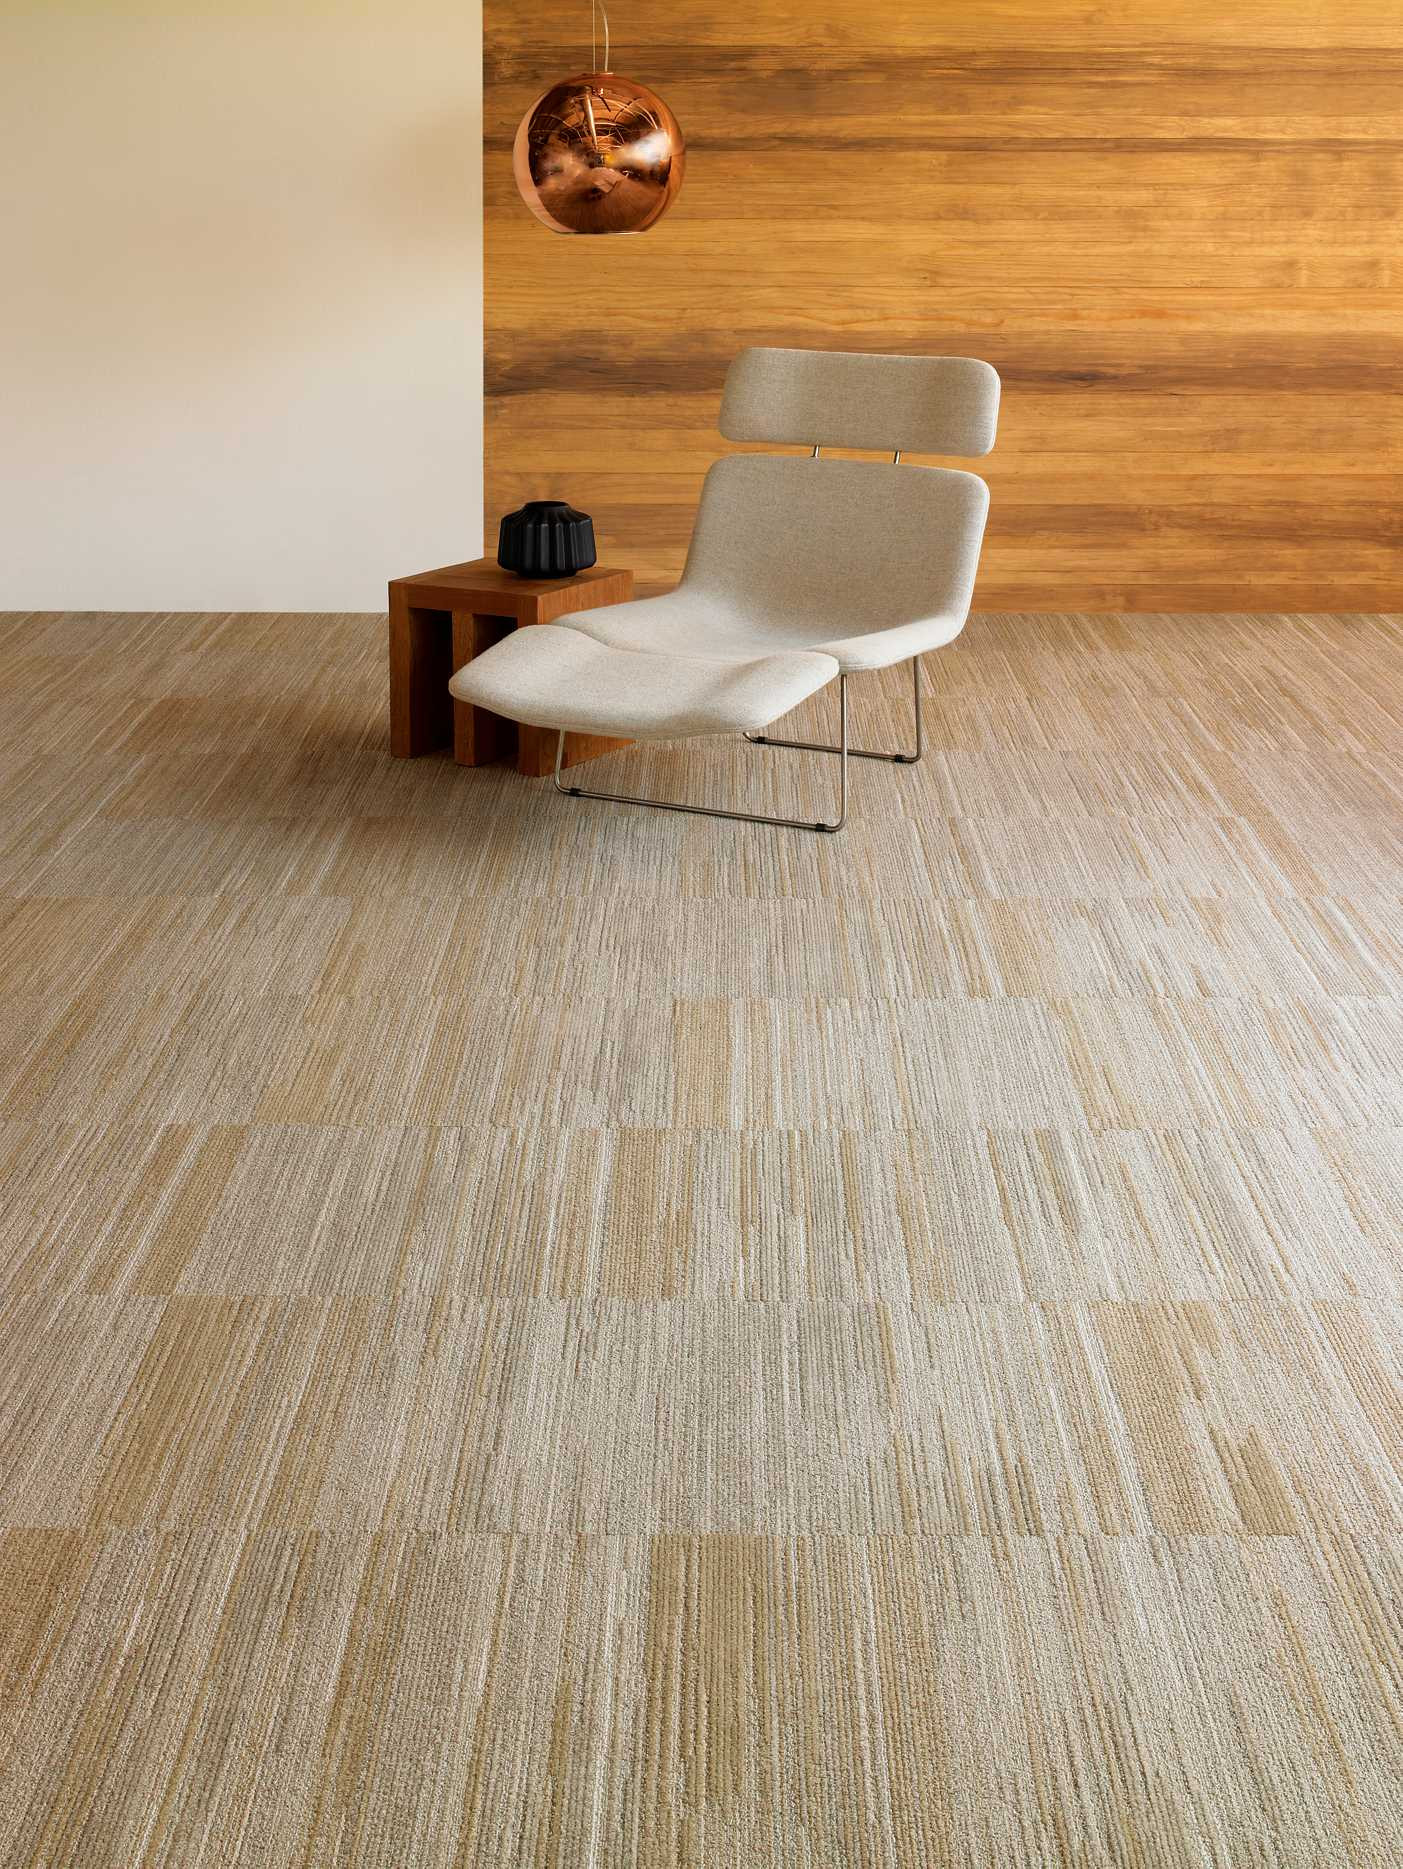 26 Cute Hardwood Flooring San Jose 2021 free download hardwood flooring san jose of ingrain tile 59339 shaw contract shaw hospitality intended for 59339